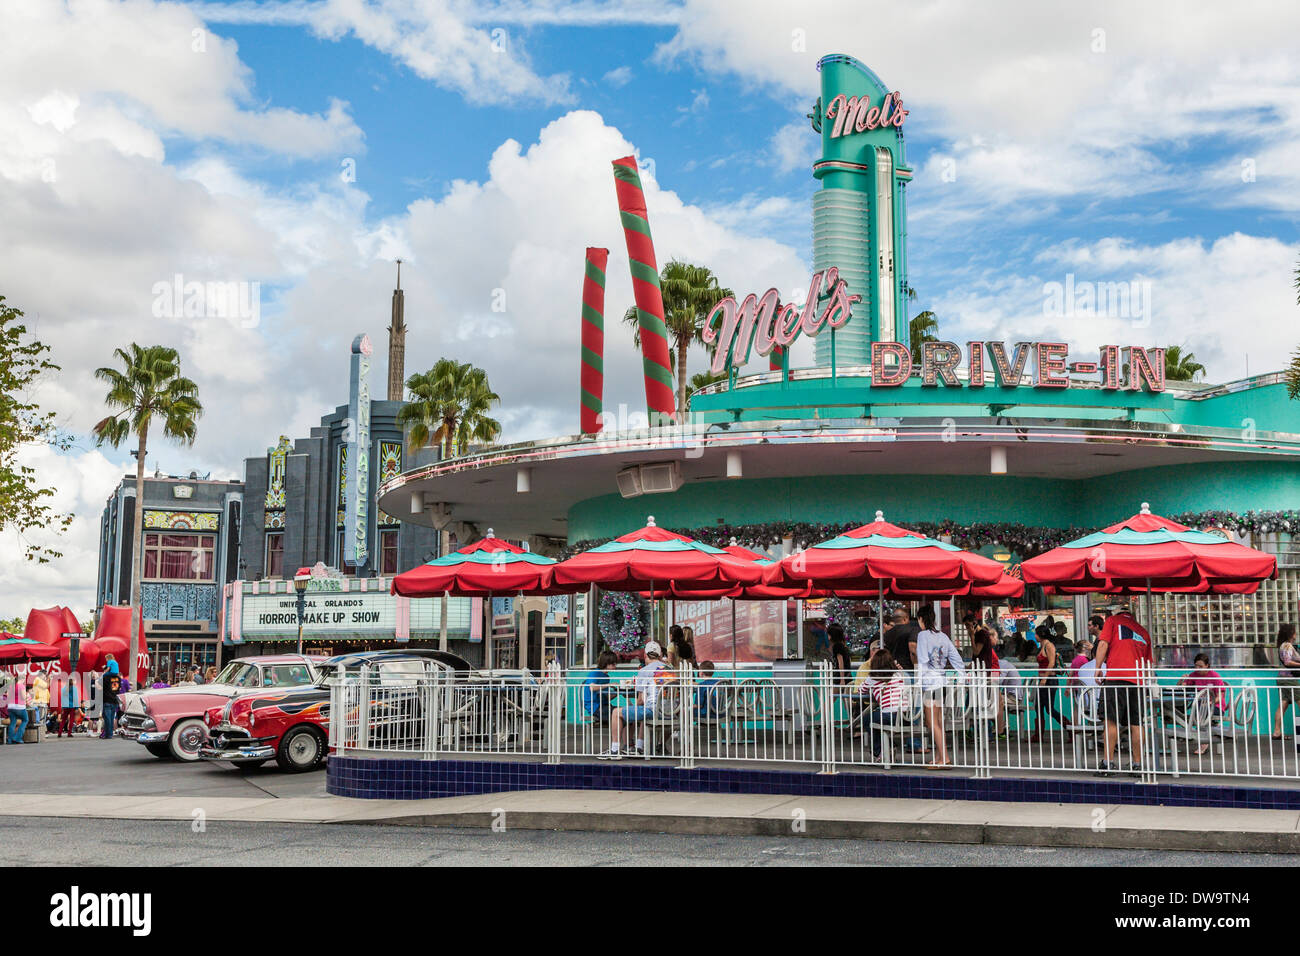 Classic 50s cars at the replica of Mel's Drive-In restaurant at Universal Studios theme park in Orlando, Florida - Stock Image